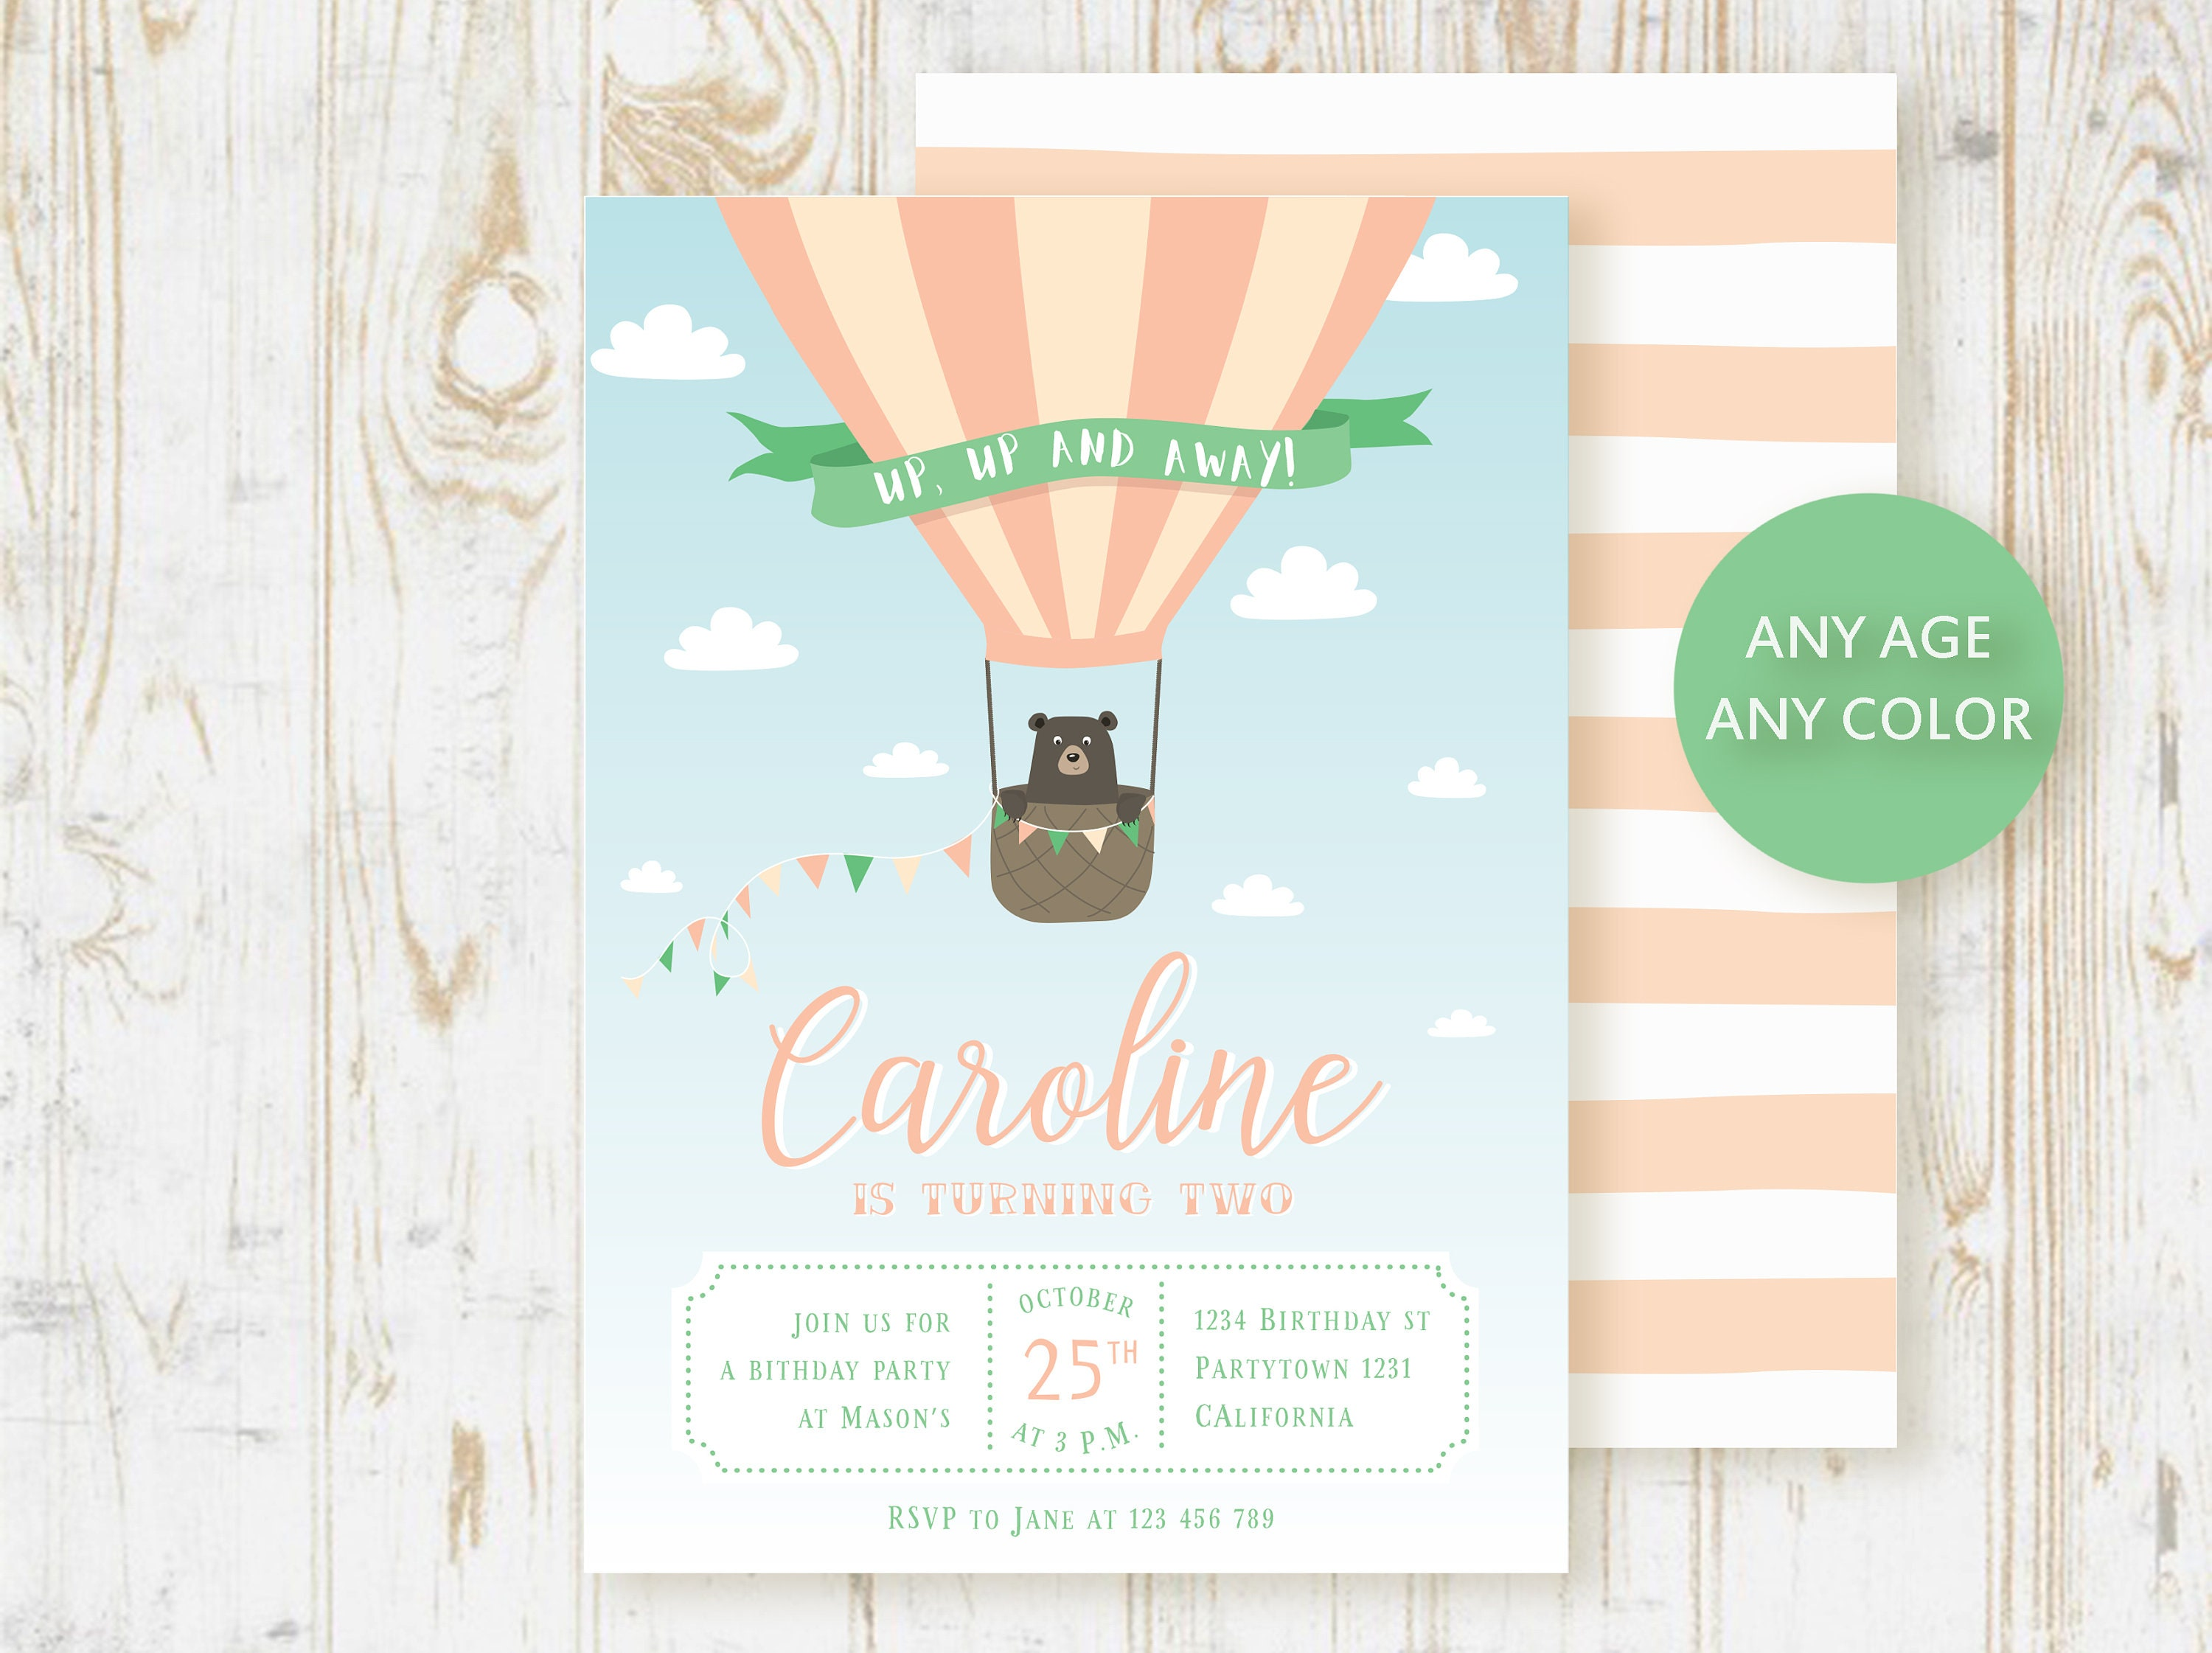 Hot air balloon invitation up up and away invite pink blush etsy image 0 filmwisefo